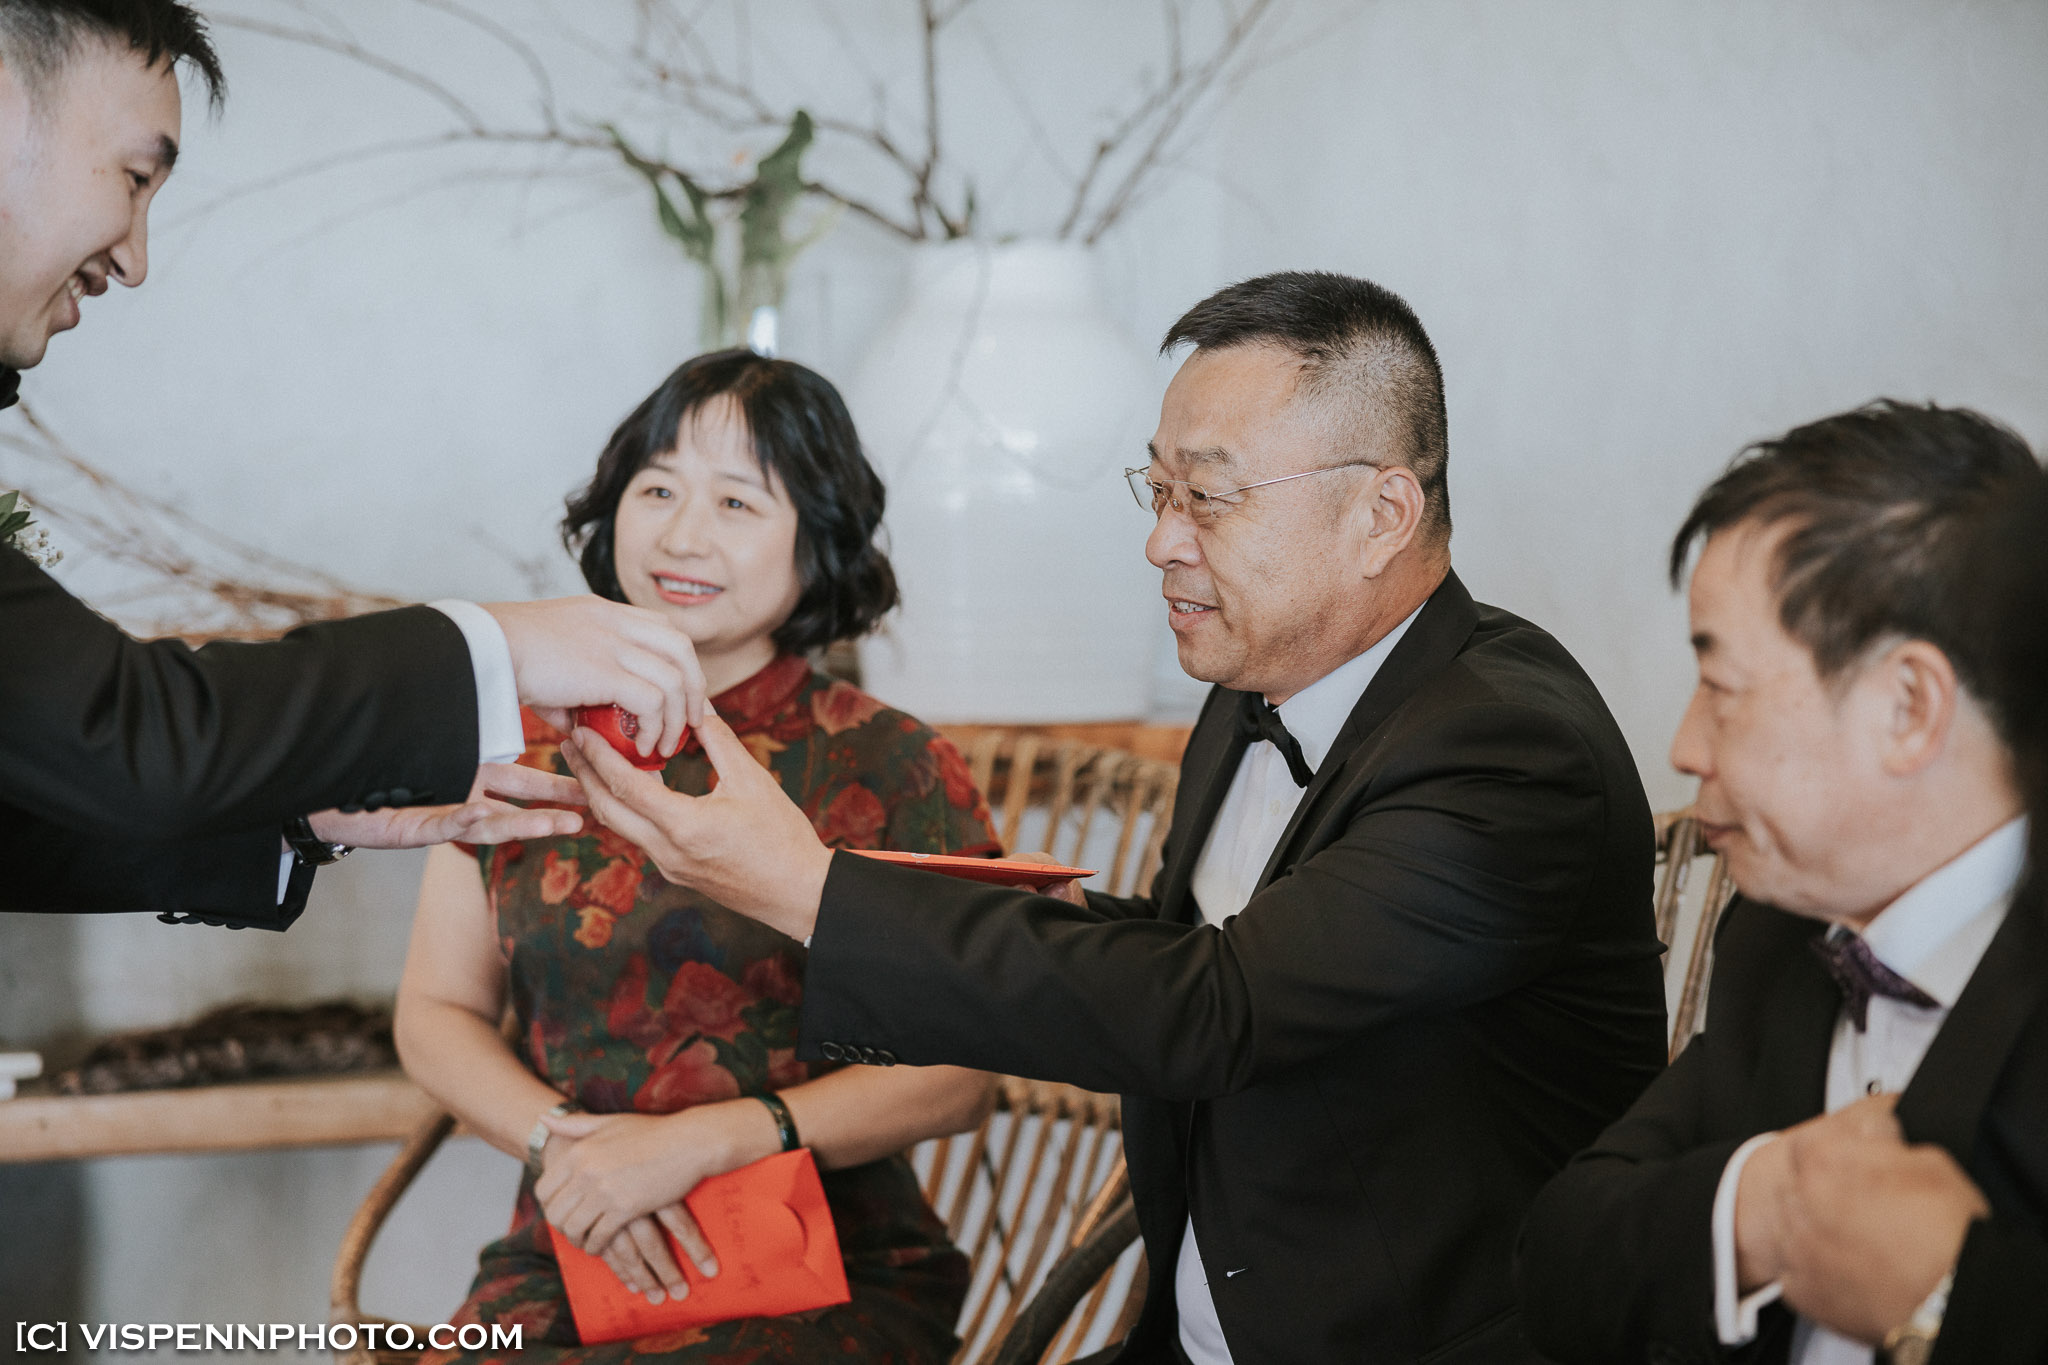 WEDDING DAY Photography Melbourne VISPENN 墨尔本 婚礼跟拍 婚礼摄像 婚礼摄影 结婚照 登记照 LeanneWesley 01518 1P EOSR VISPENN